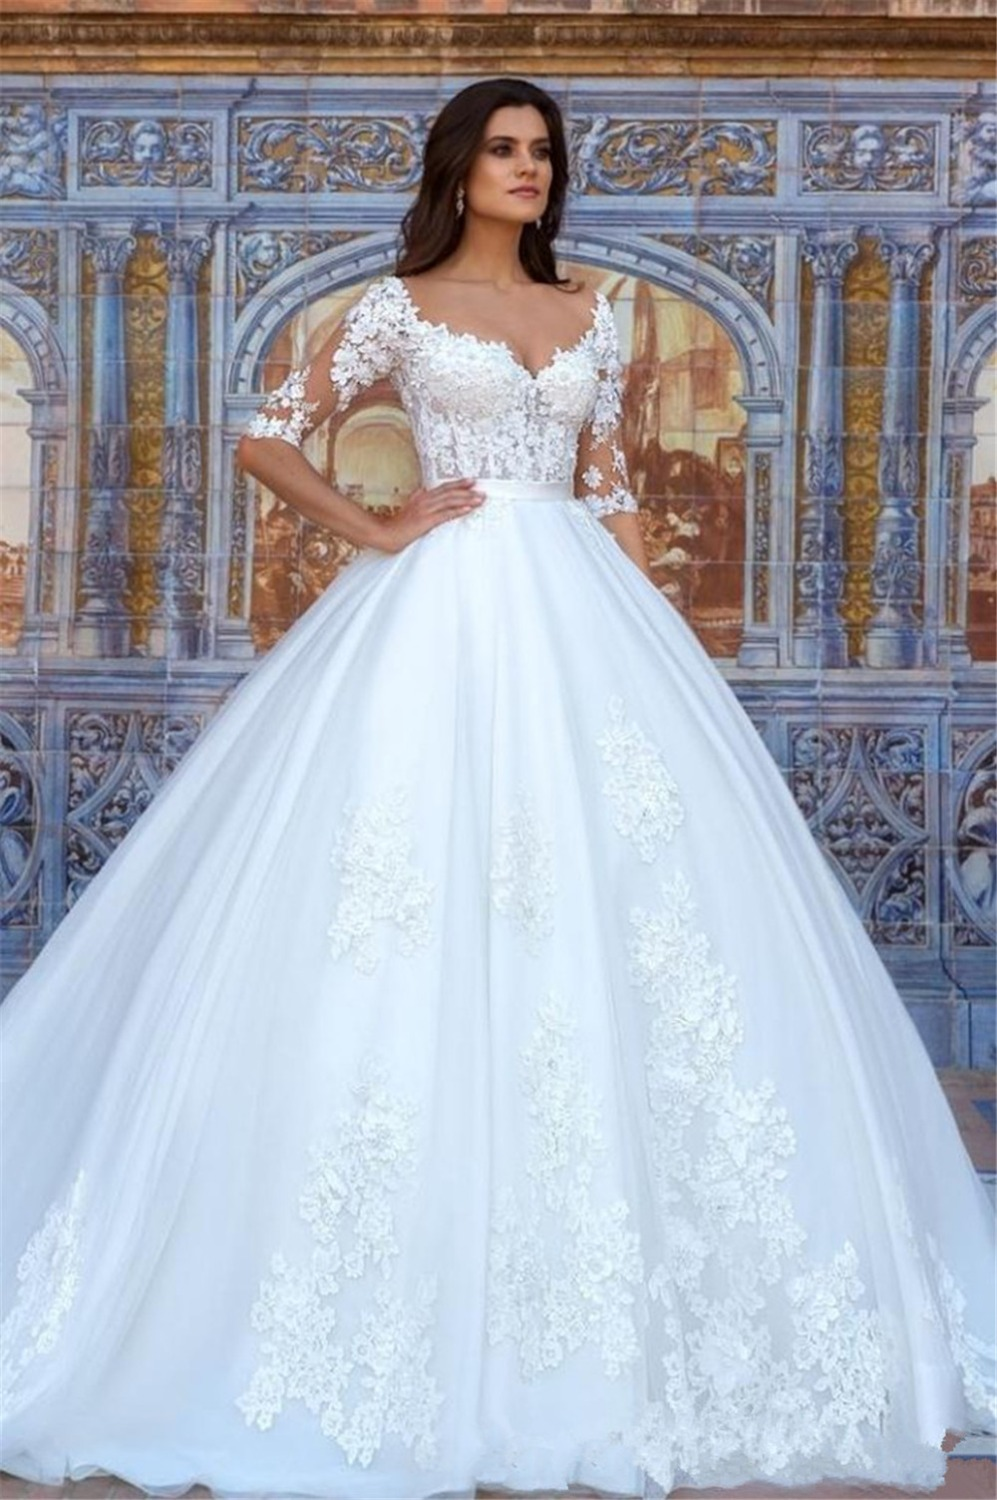 2018 A Line Wedding Dresses Lace Appliques 1 2 Sleeves Wedding Dress Bridal Gowns Court Train